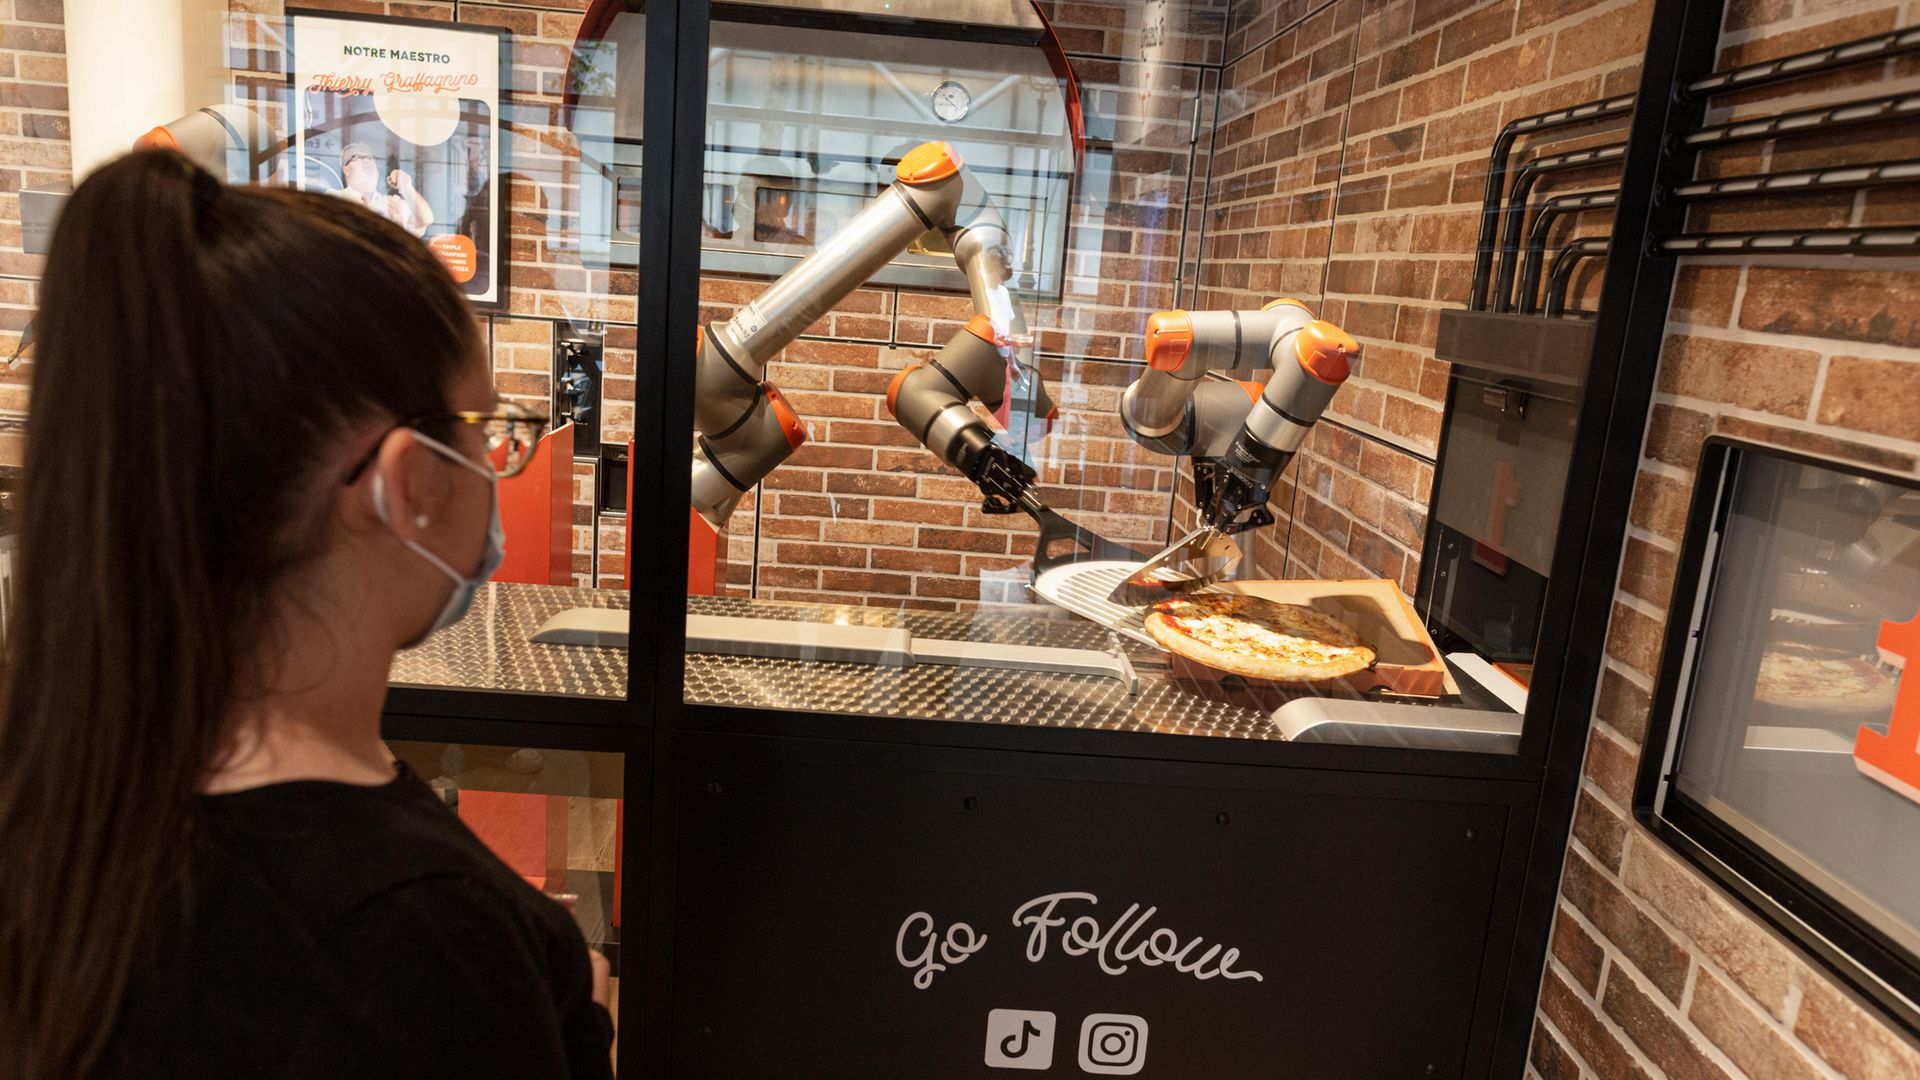 A woman watches as her pizza is prepared at Pazzi, Paris' first robotic pizzeria - Credit: Photo by Sam Tarling/Getty Images